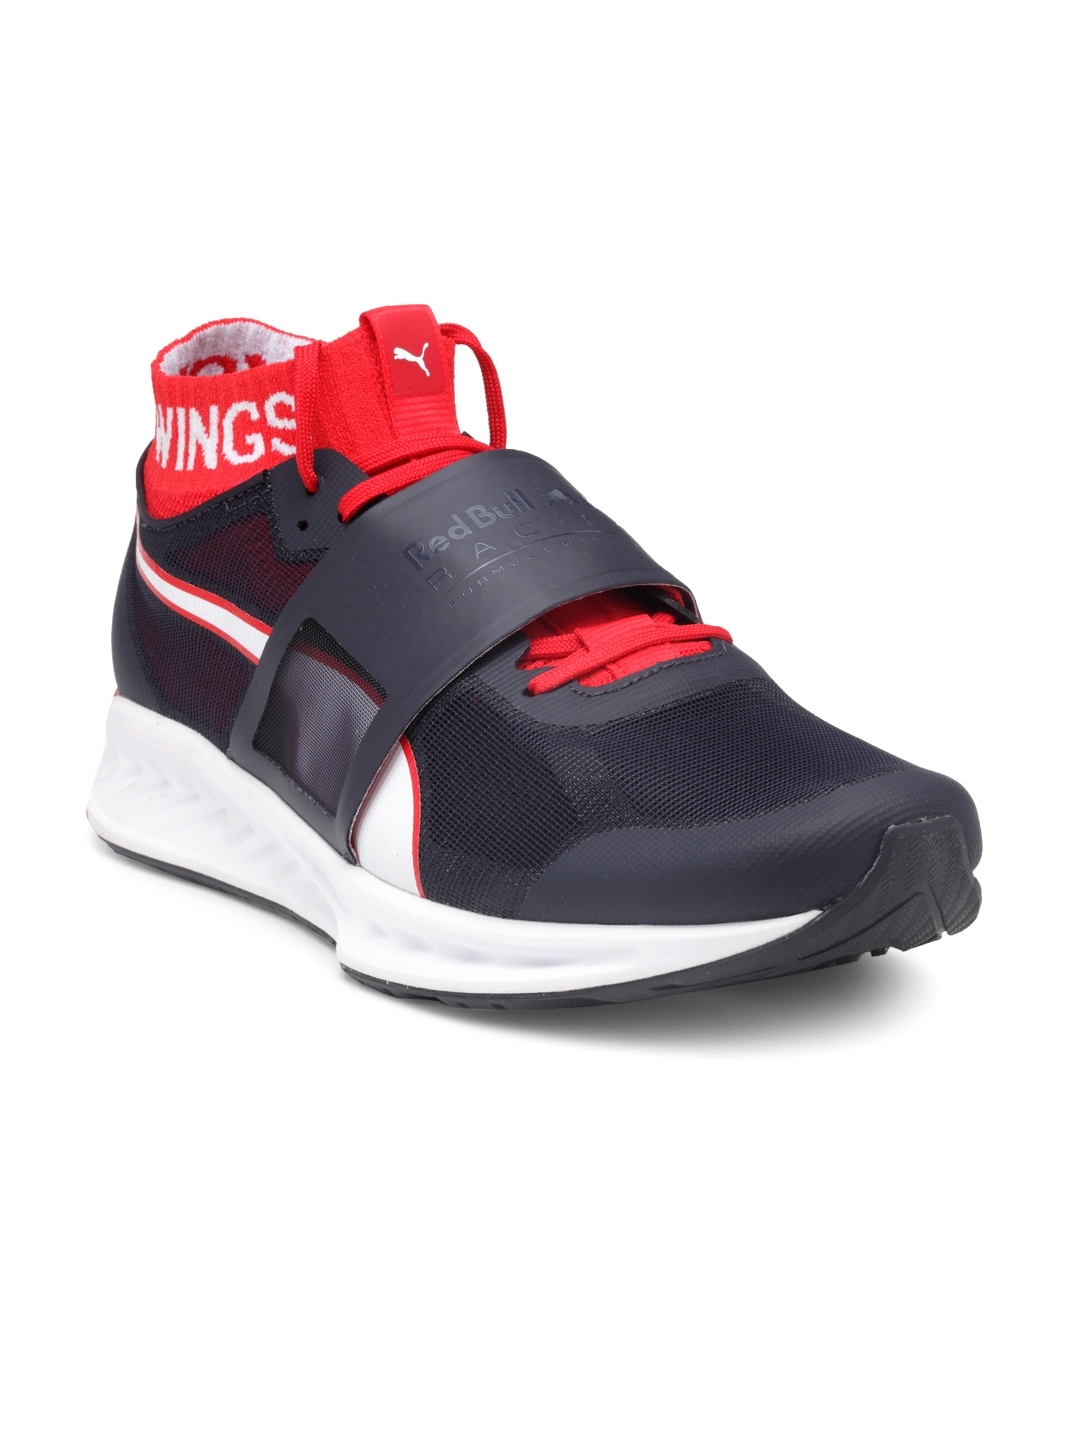 new product 612ea ffaaf Puma Men Navy Blue Red Bull Racing Mechs Ignite V3 Solid Mid-Top Sneakers